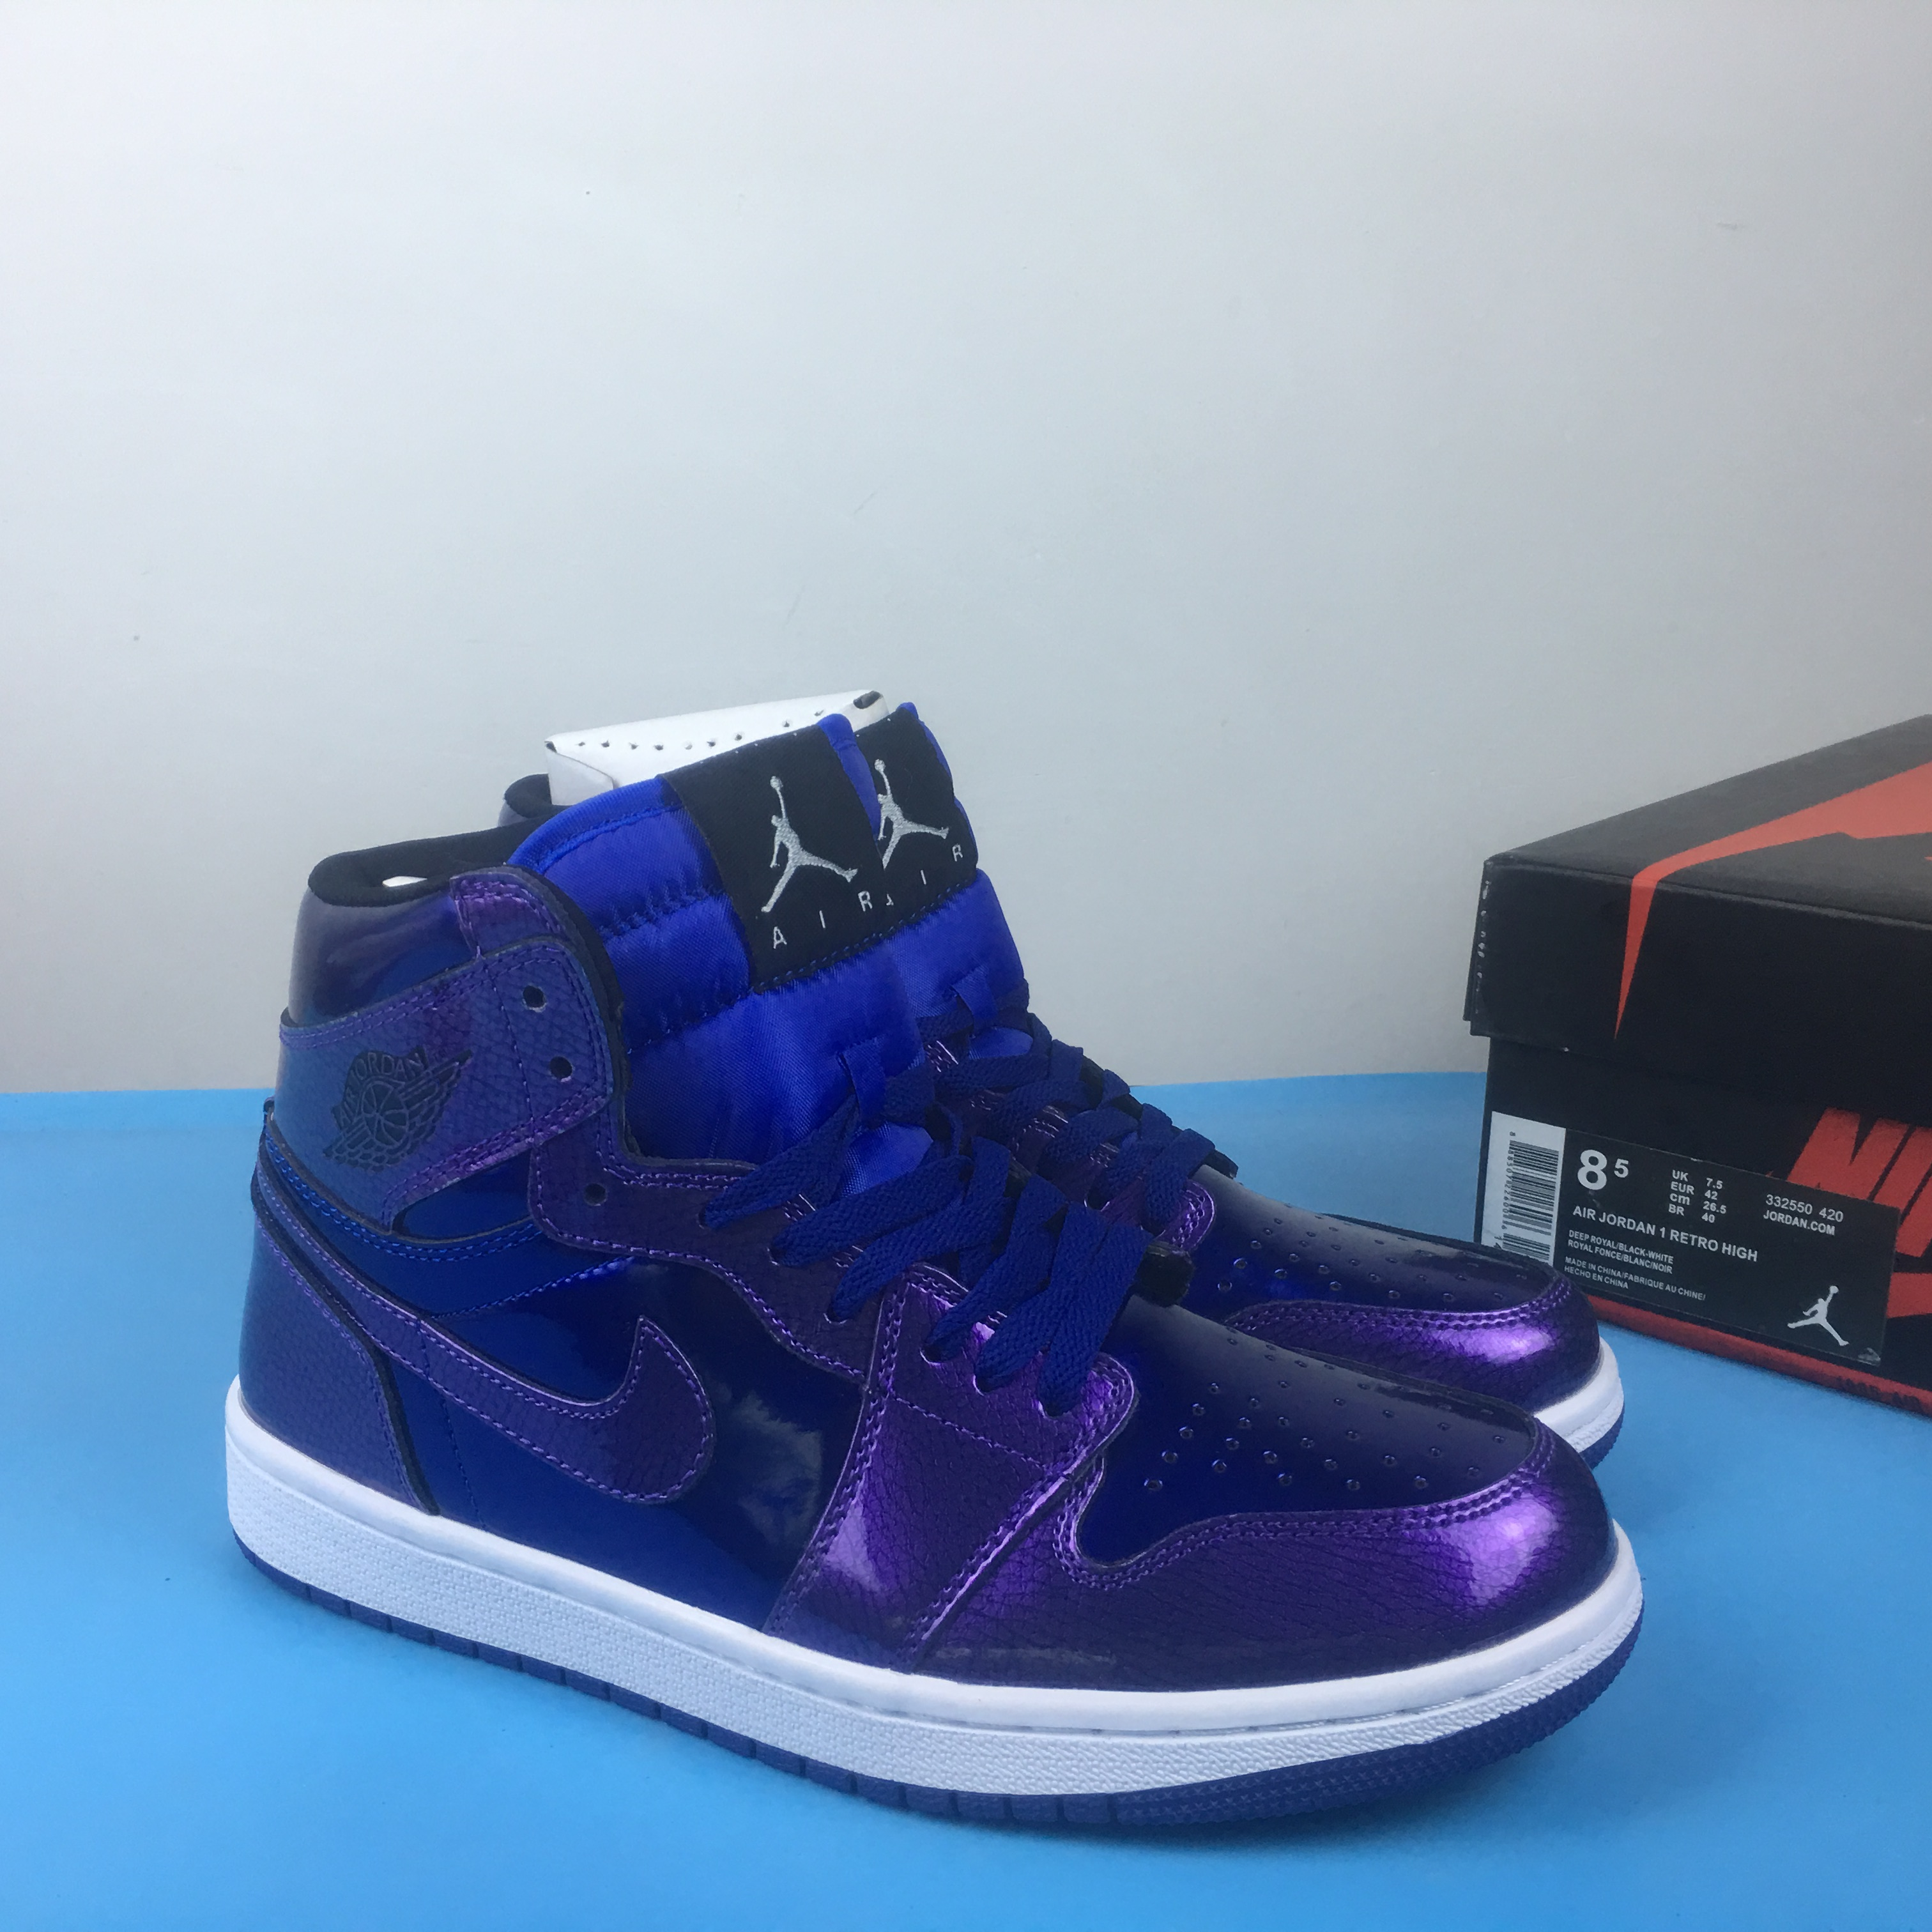 Air Jordan 1 Retro High Shine Blue Shoes